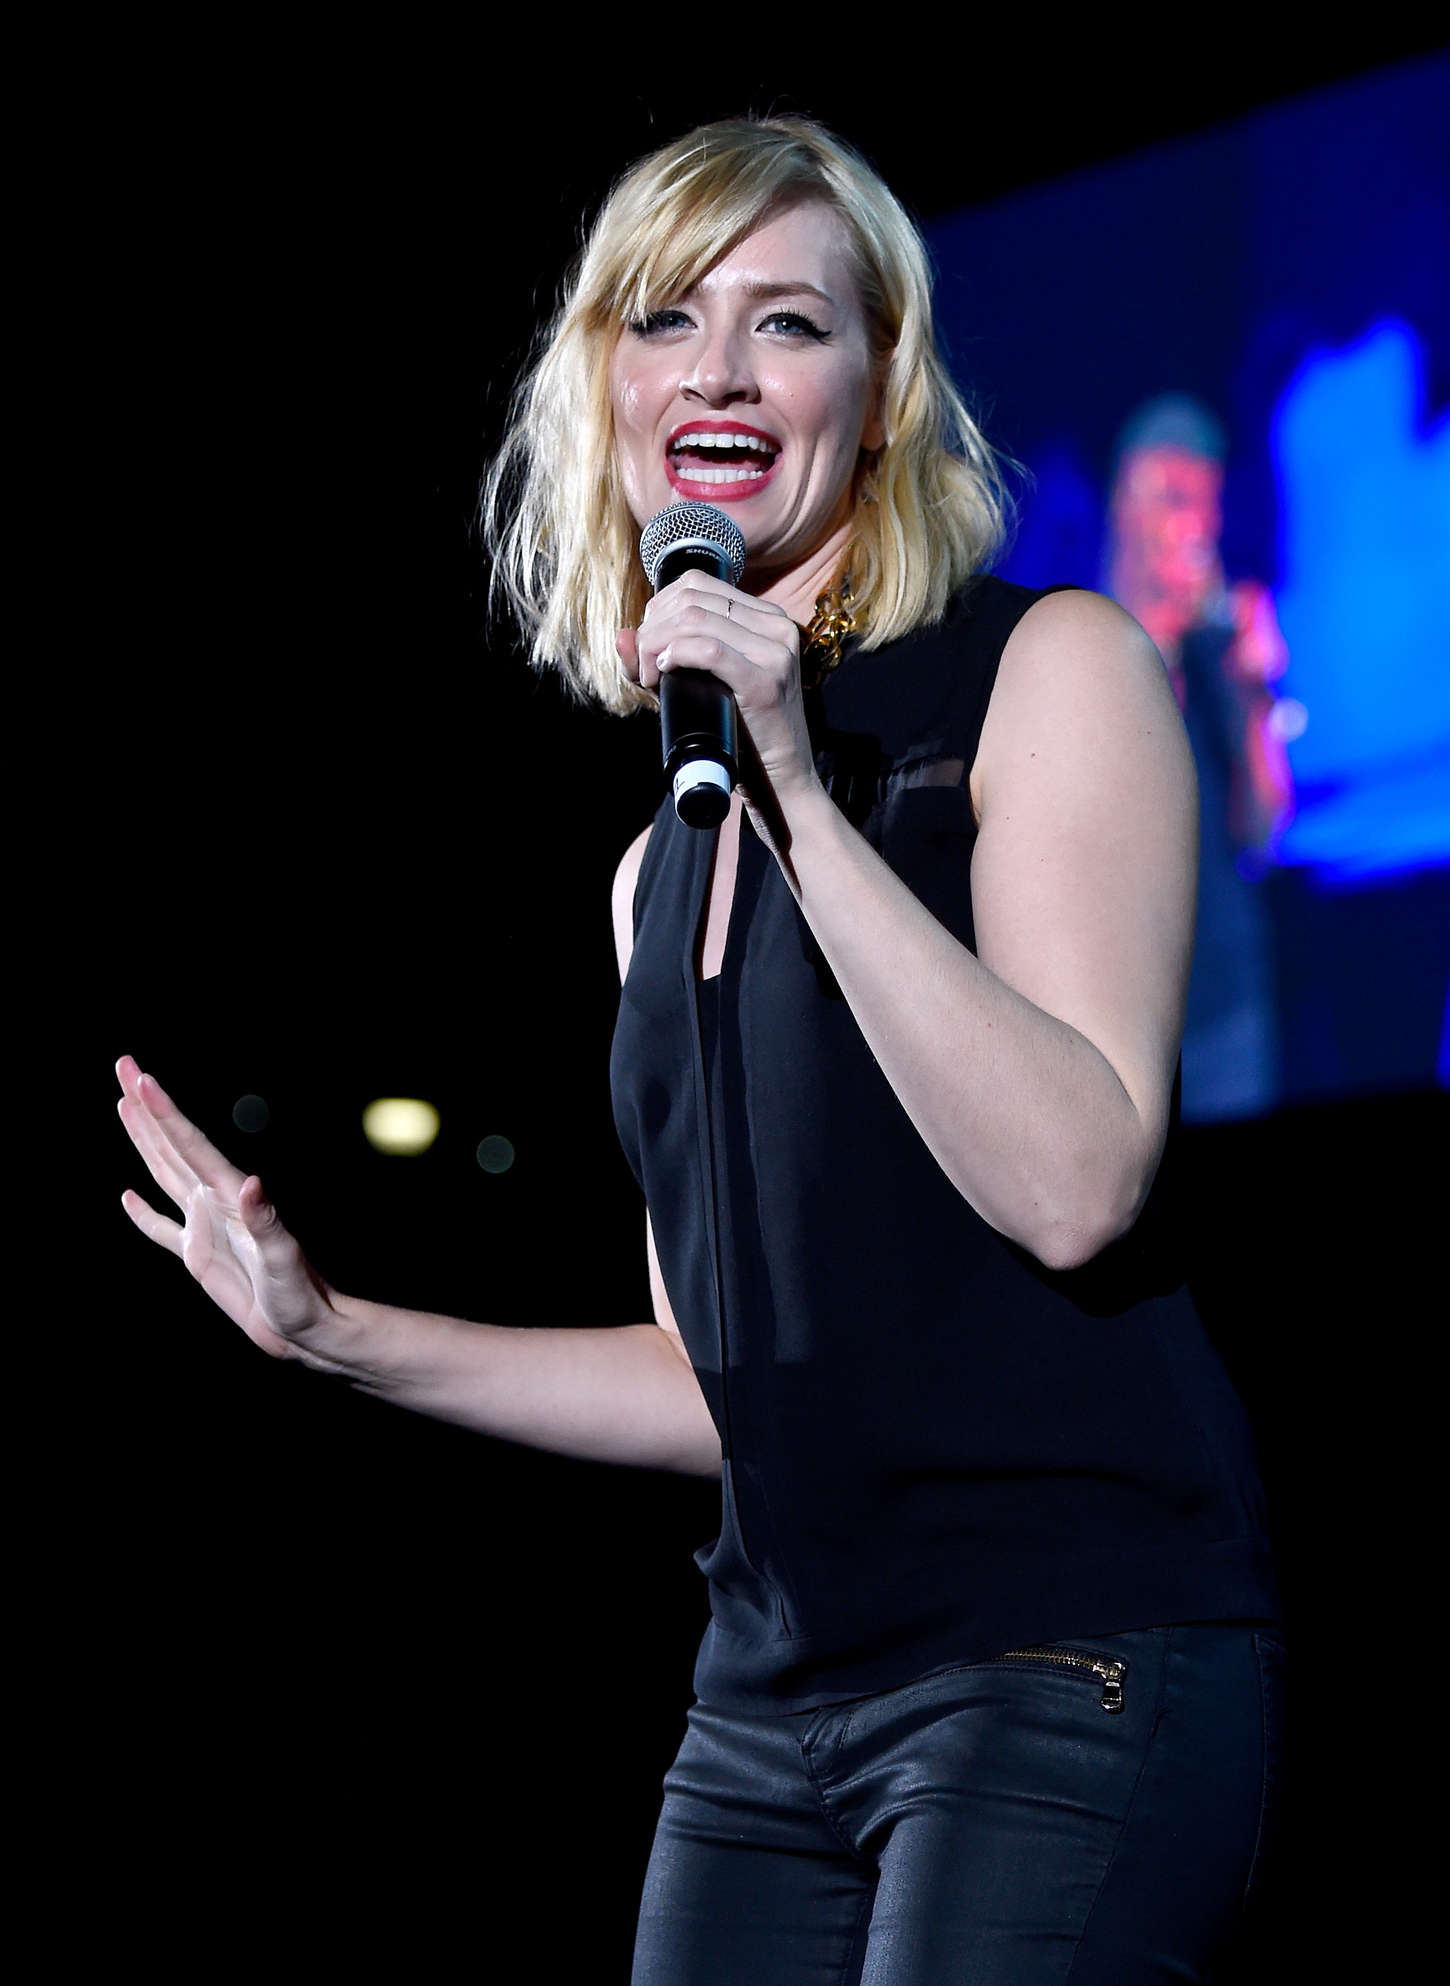 Beth Behrs - CBS Radio's 'We Can Survive' 2014 at the Hollywood Bowl in Los Angeles